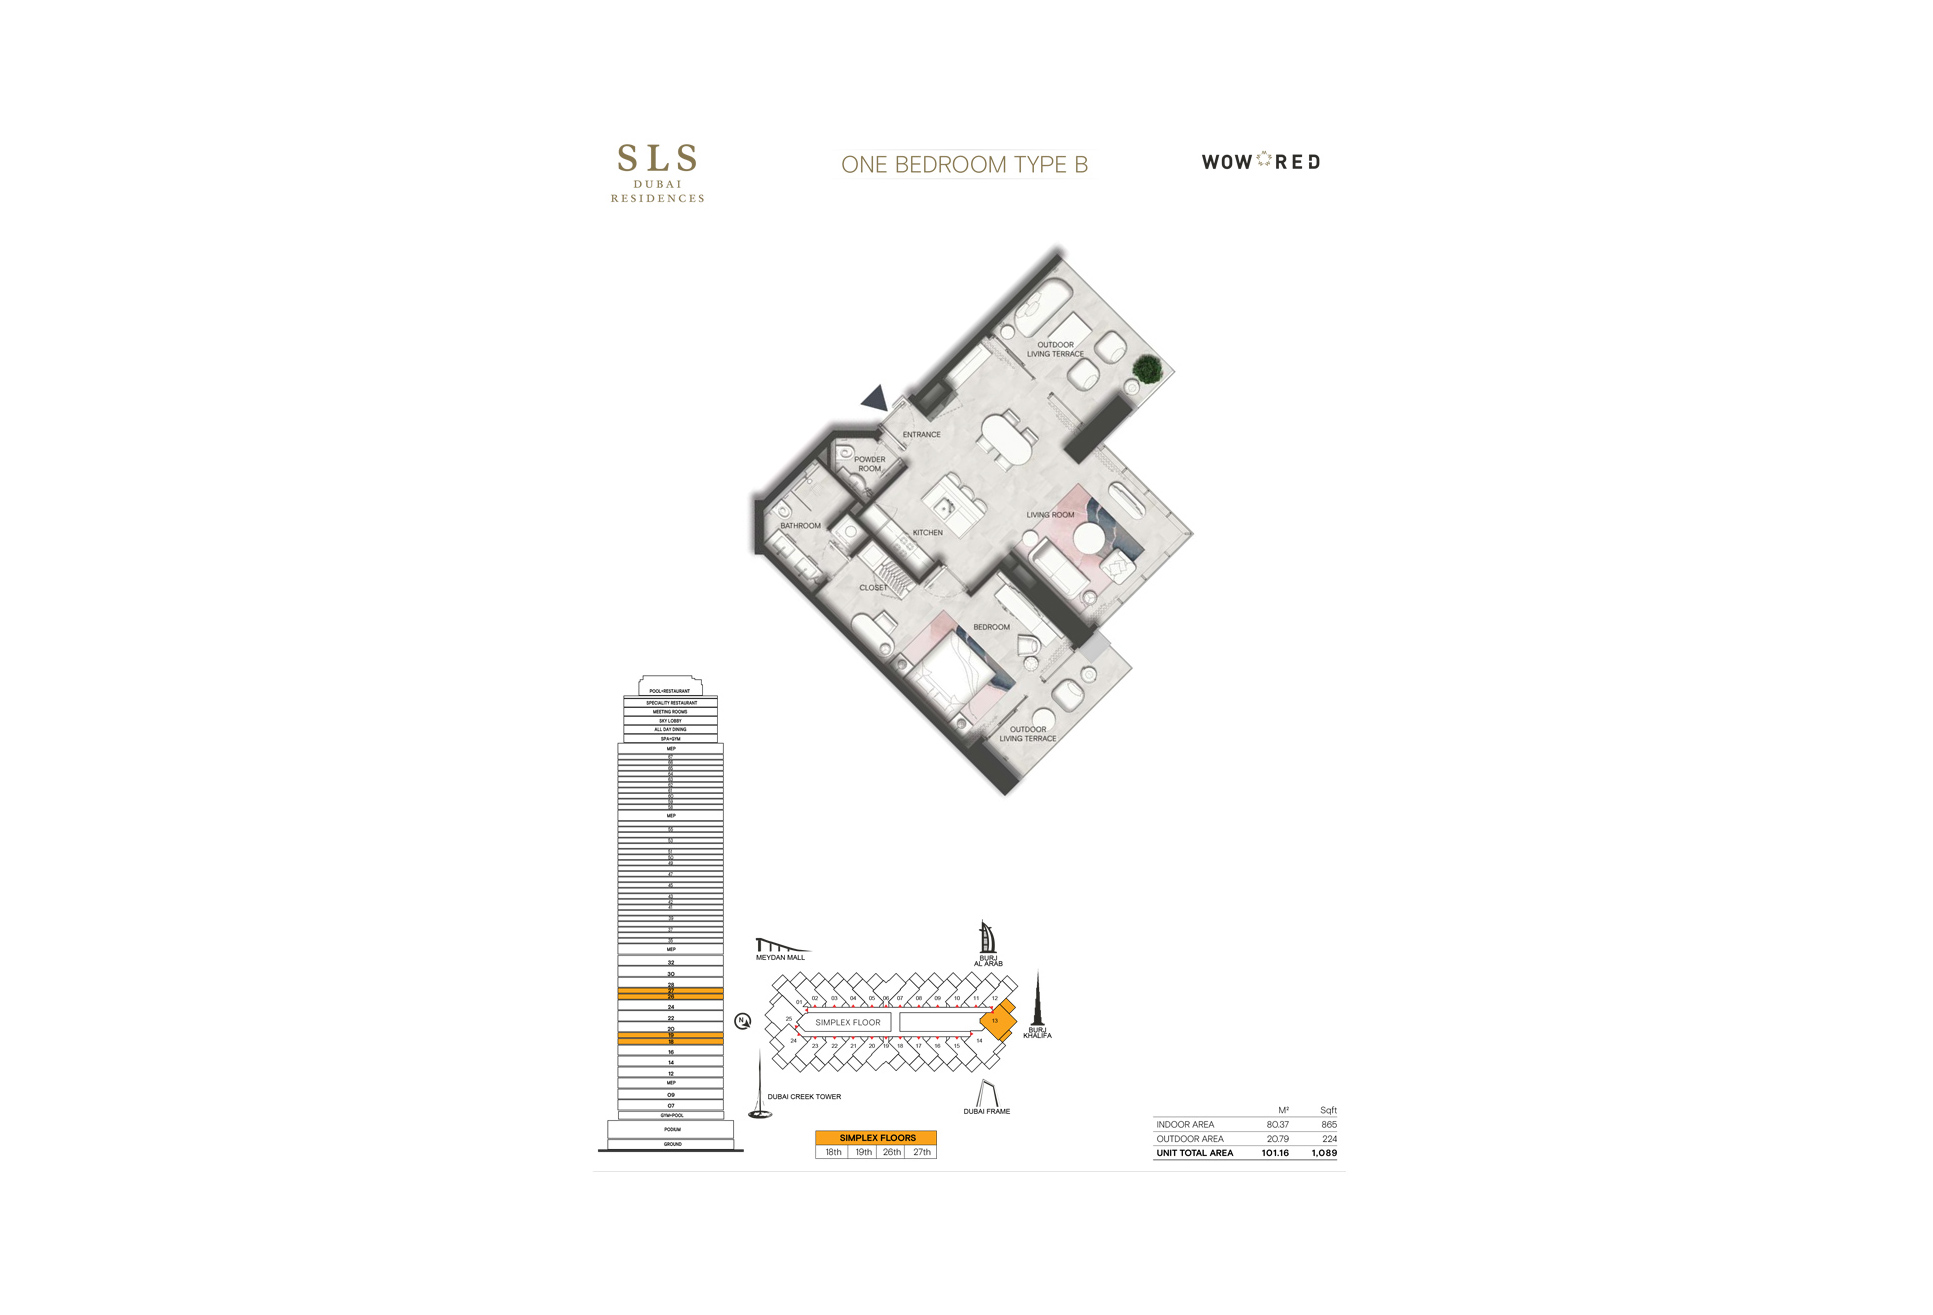 SLS Residences 1 BR Floor Plan Type B